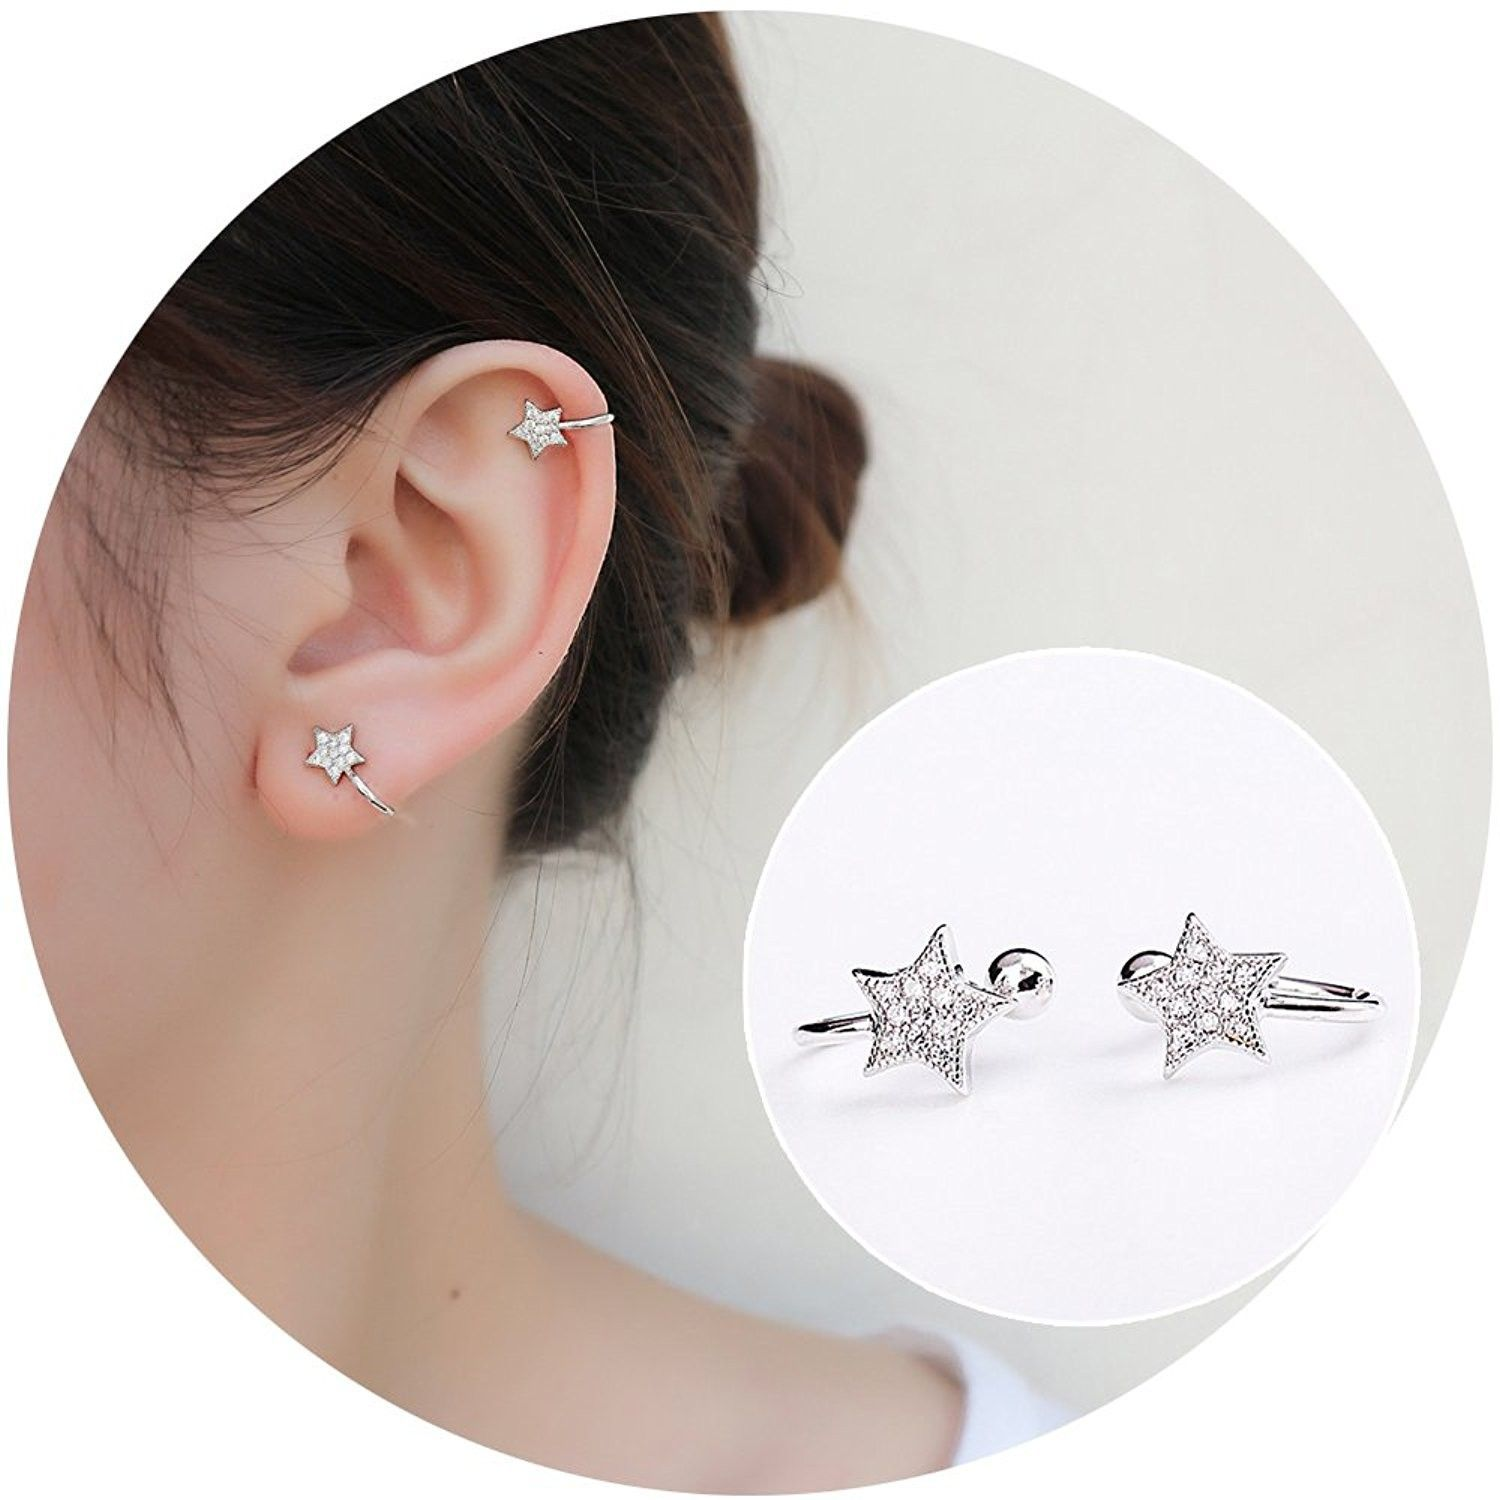 Nose piercing trends 2018  Sterling Silver Stud Earrings Sparkling Bling Rhinestone Inlaid Star